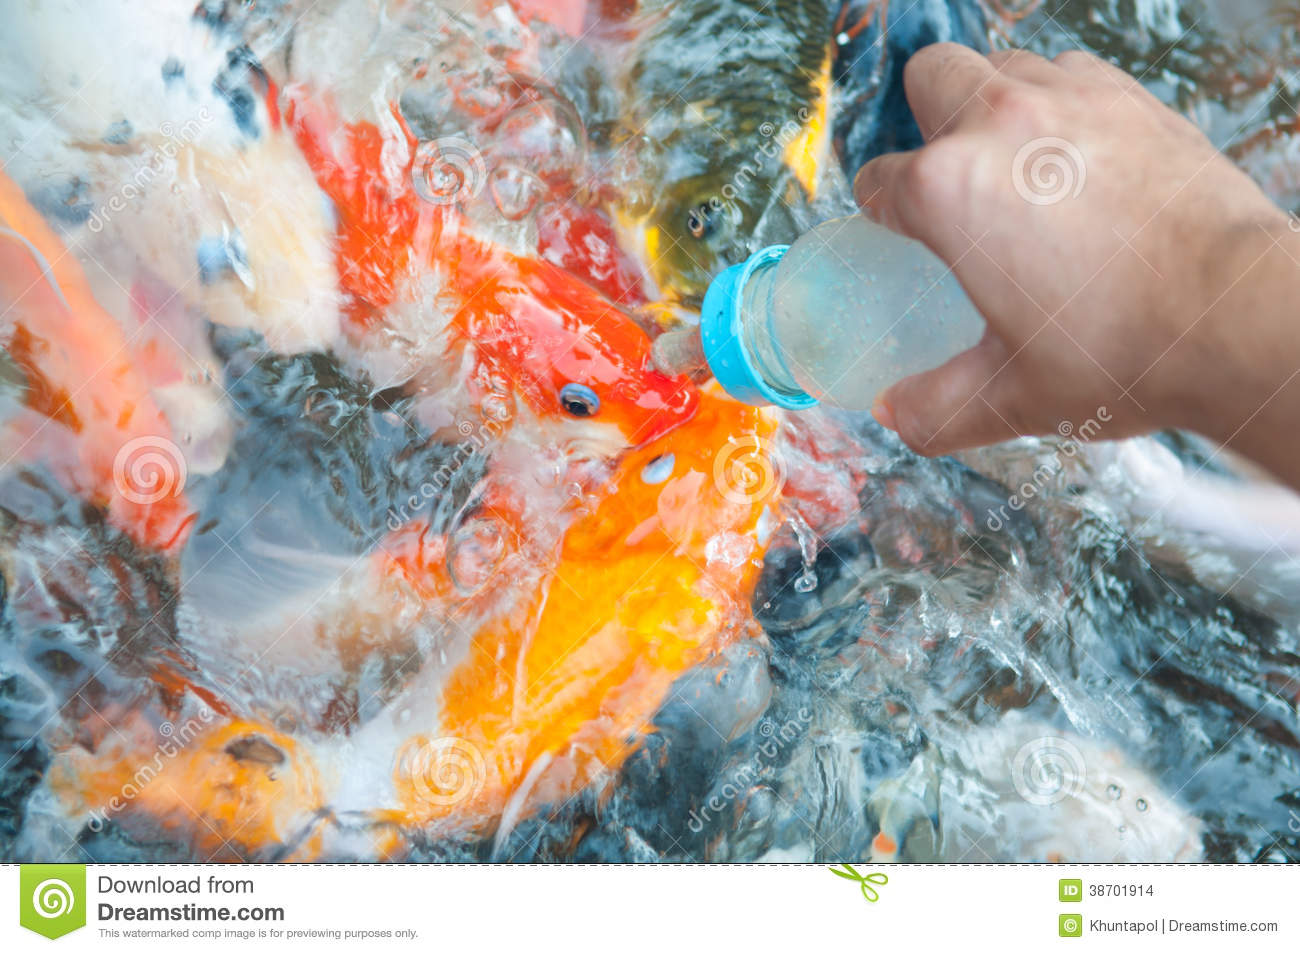 Feeding koi fish with milk bottle stock images image for What to feed koi fish